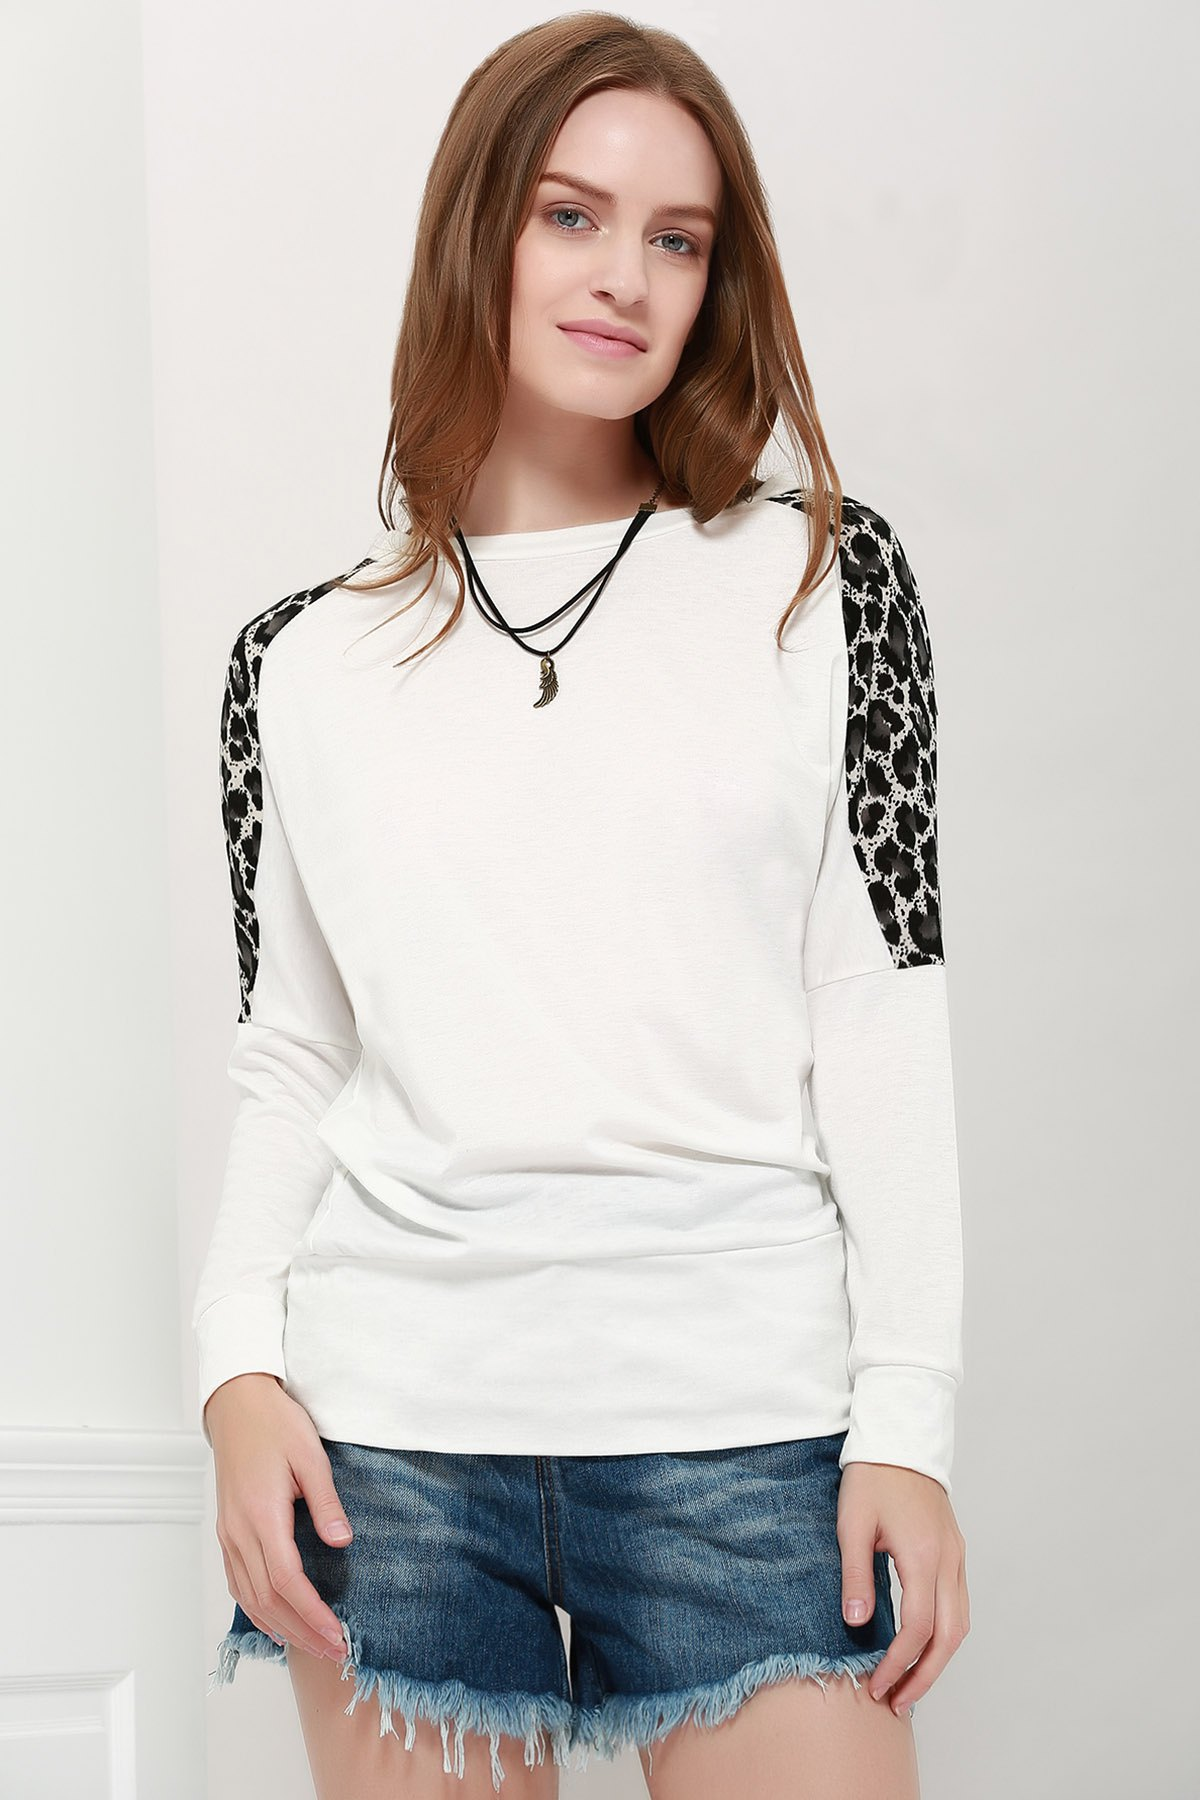 Fashion Morden Style Loose-Fitting Leopard Splicing Long Sleeves Women's Long T-Shirts